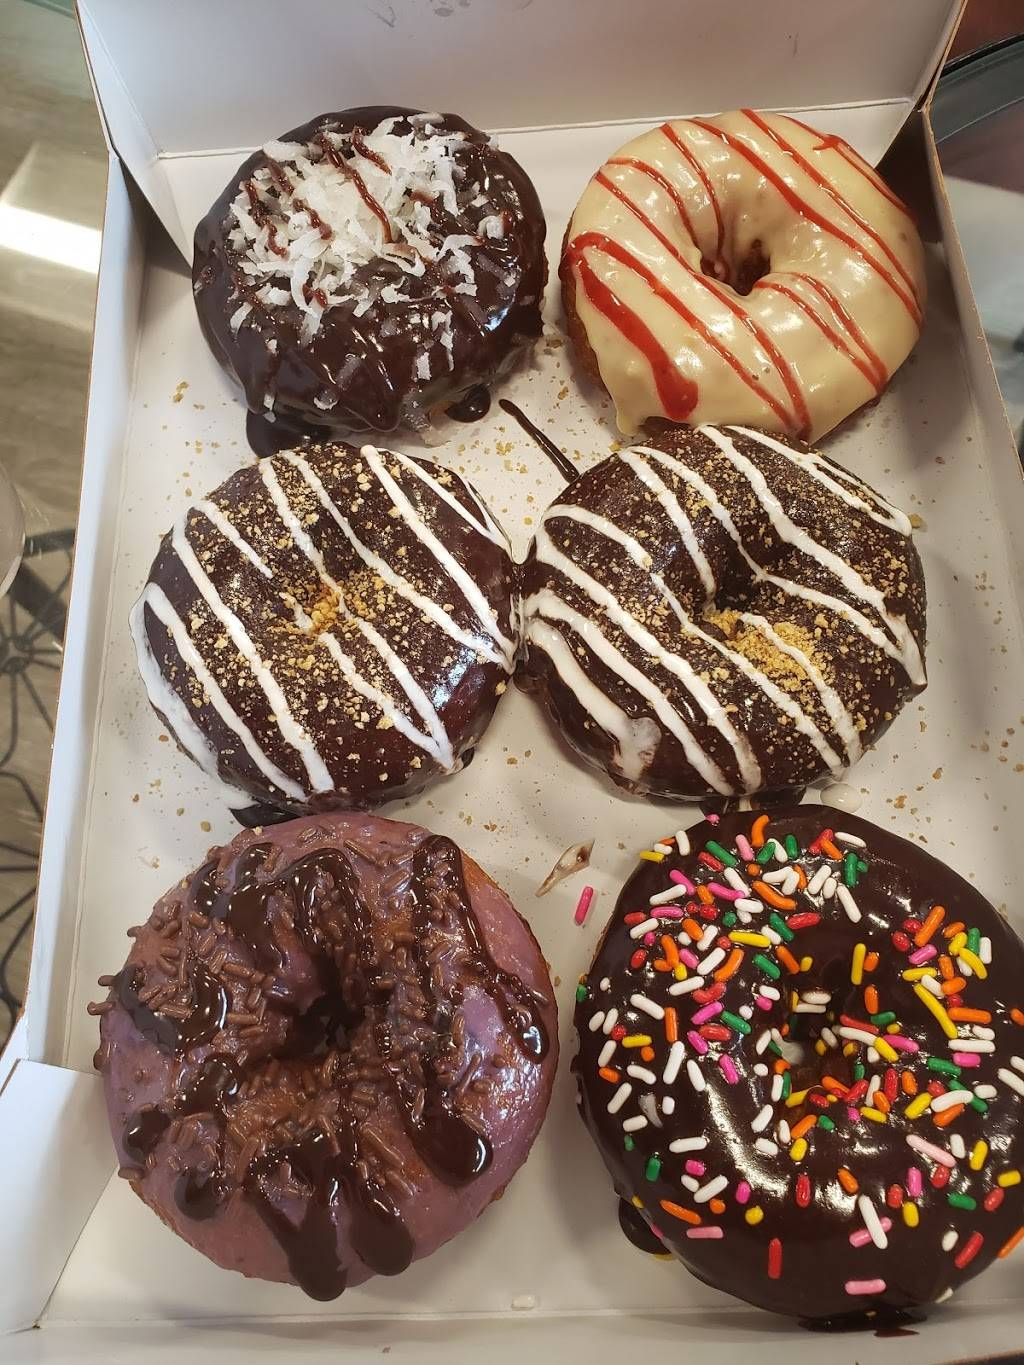 Duck Donuts - Old Alabama Square | bakery | 3005 Old Alabama Rd #170, Alpharetta, GA 30022, USA | 4703856303 OR +1 470-385-6303